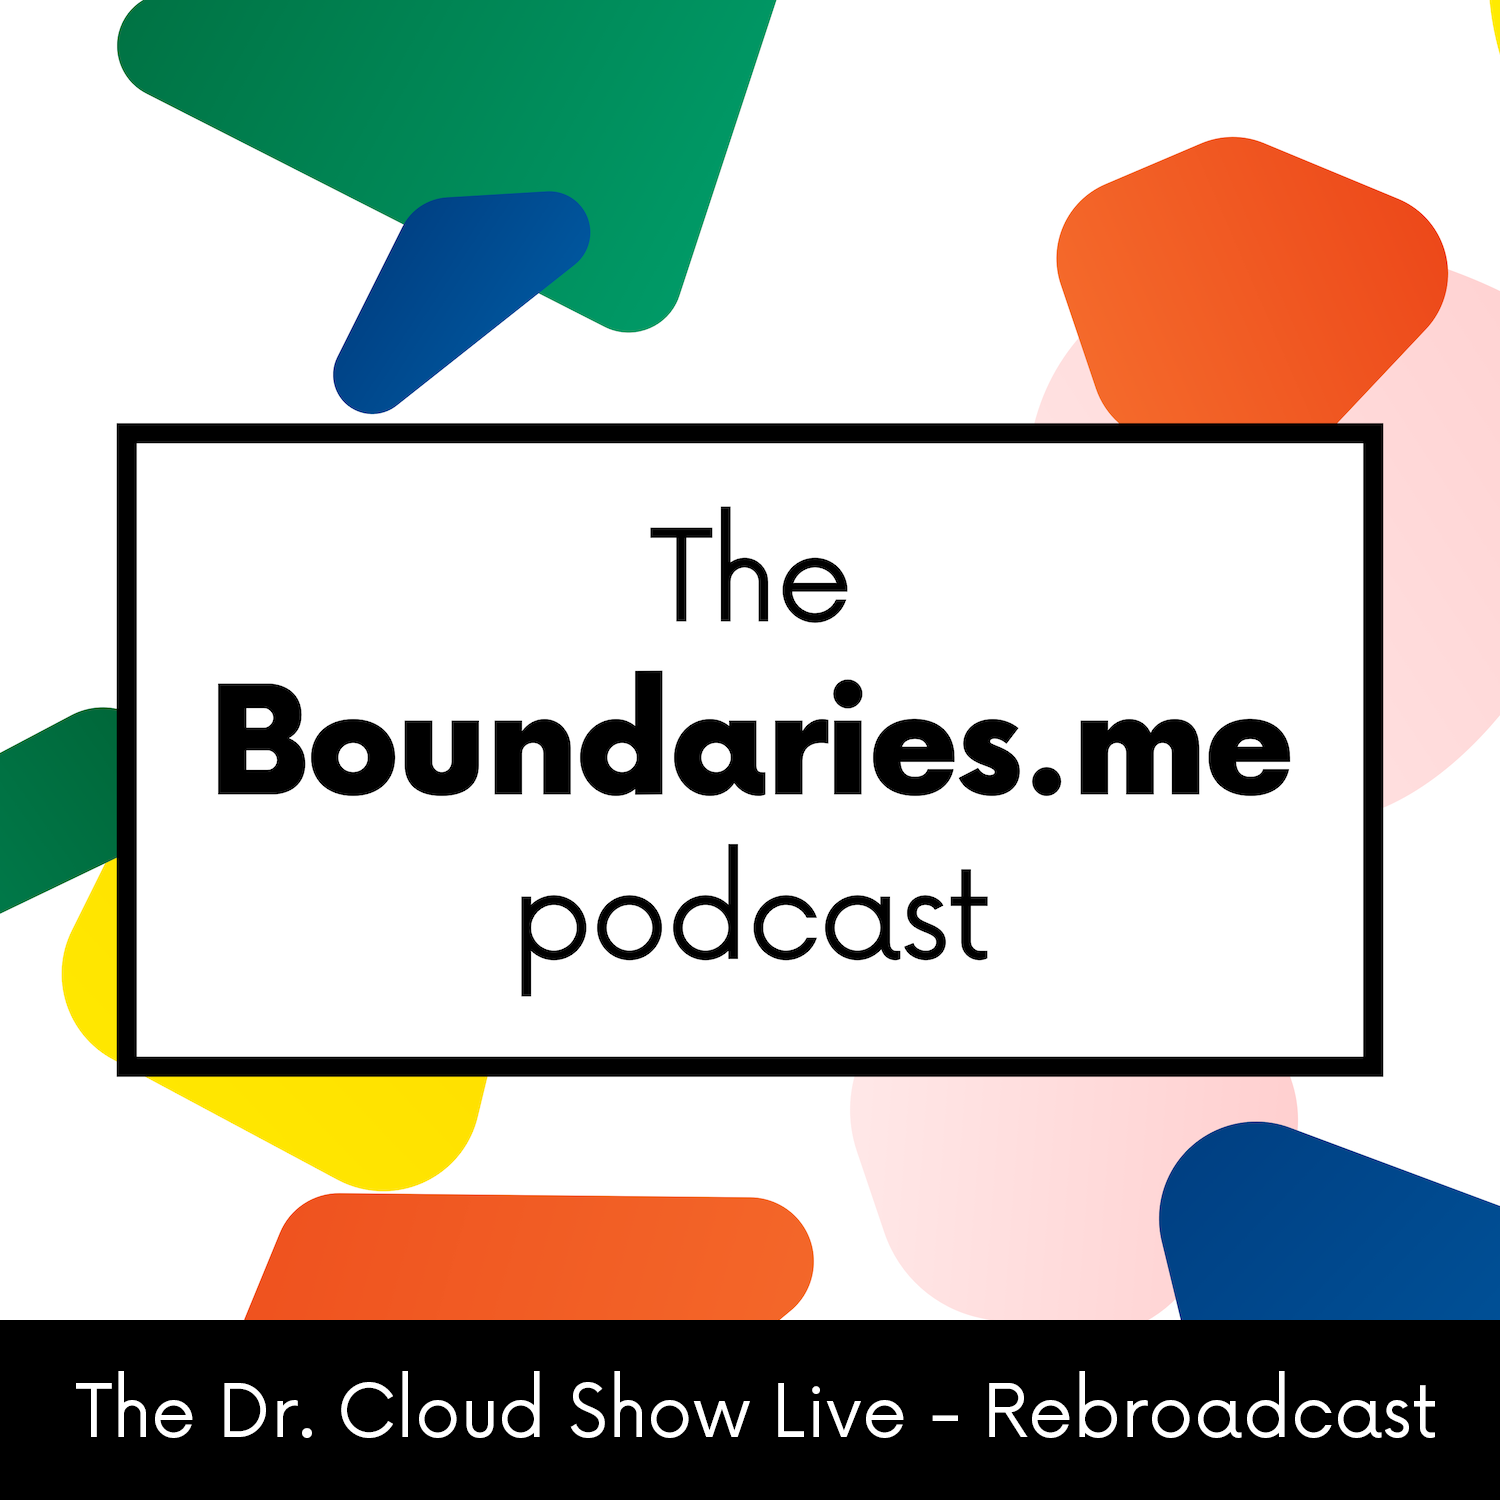 Episode 224 - The Dr. Cloud Show Live - Testing and Finding The Limits - 5-10-2021